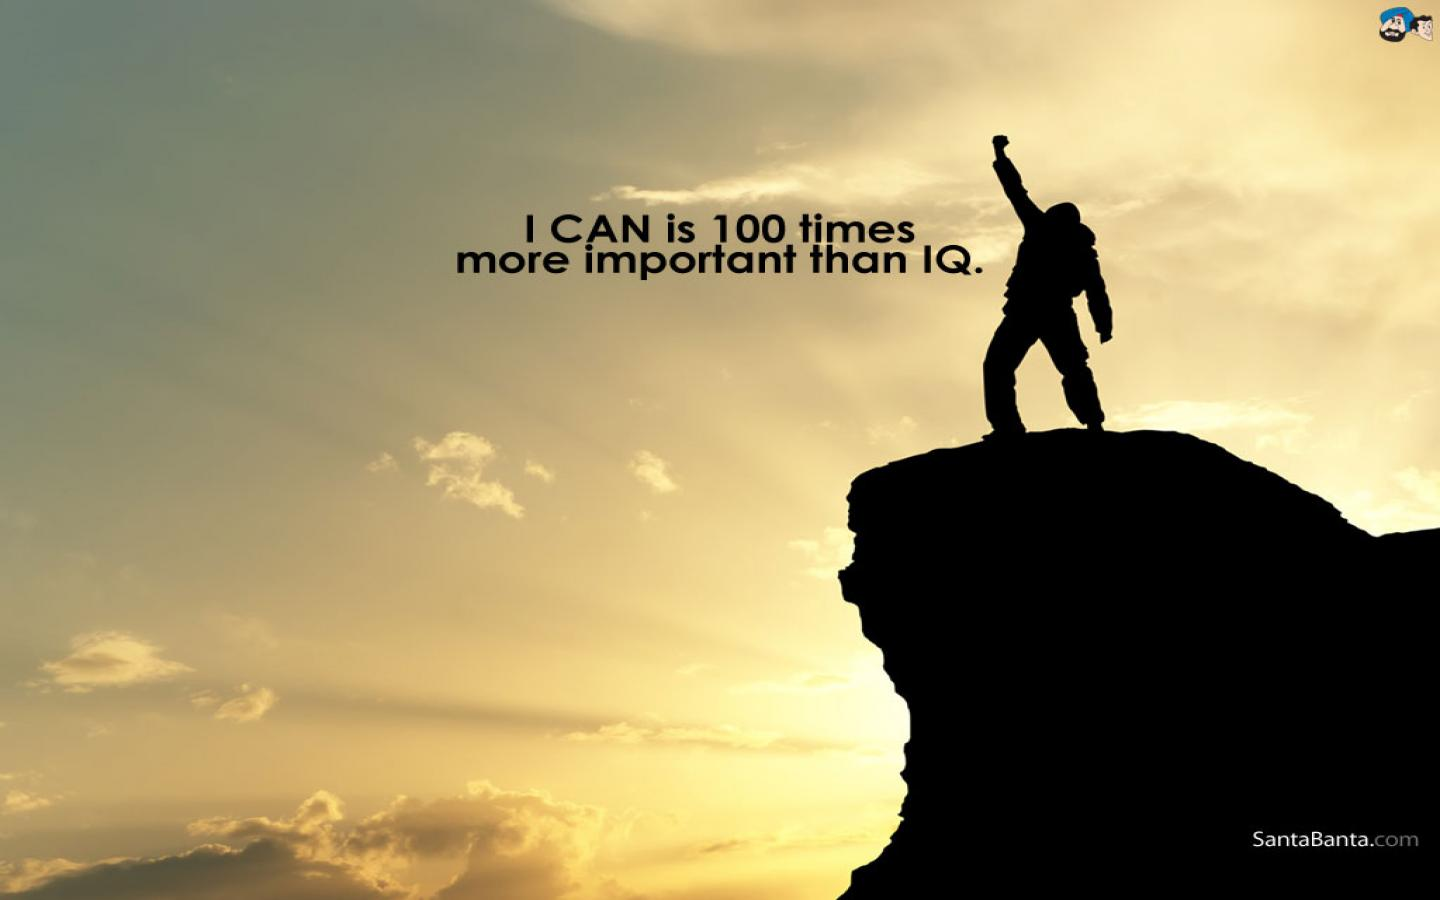 inspirational wallpaper 1440x900 - wallpapersafari